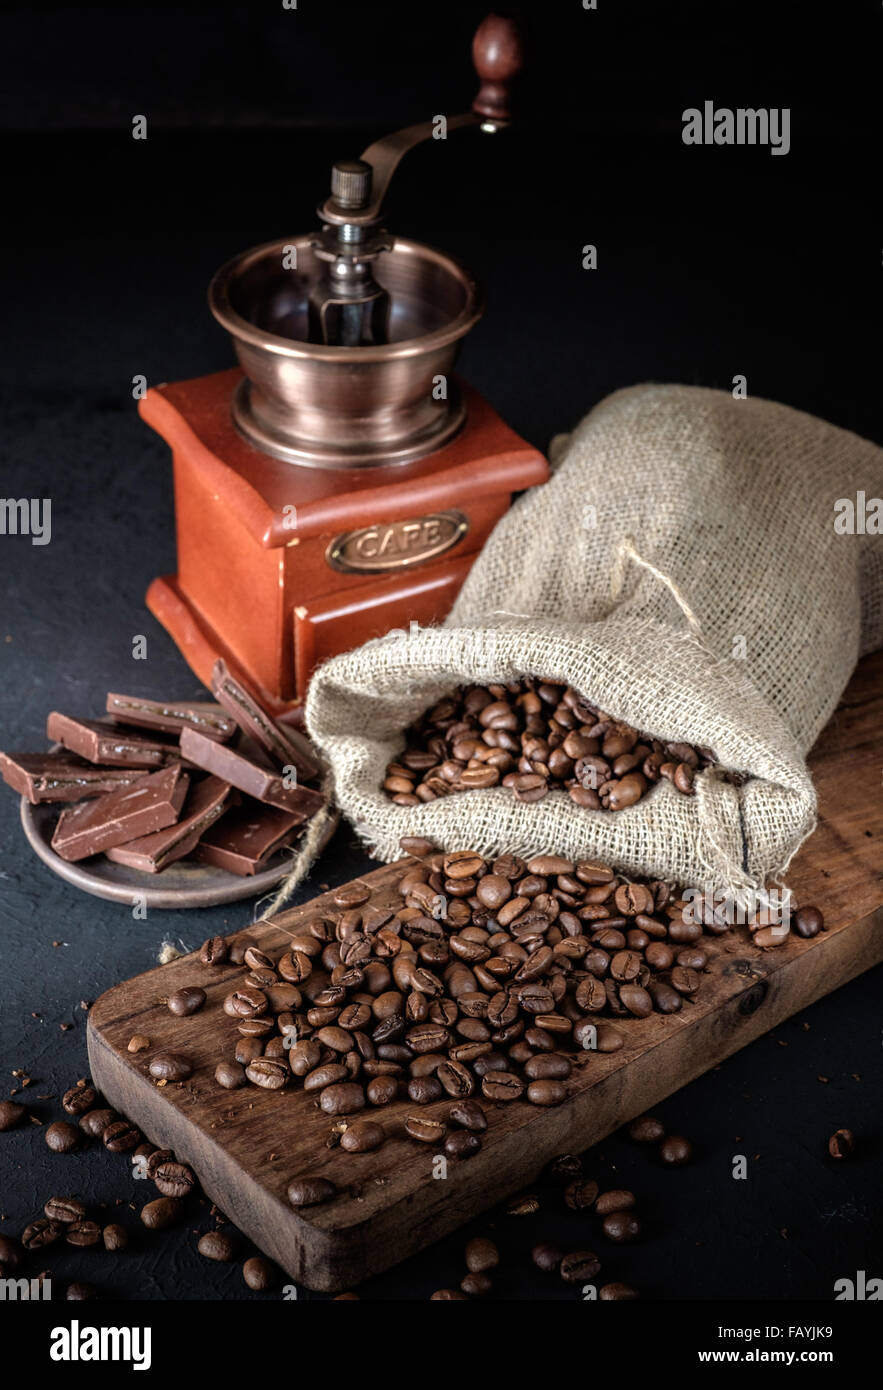 Still life of coffee beans in jute bags with coffee grinder on dark background. - Stock Image